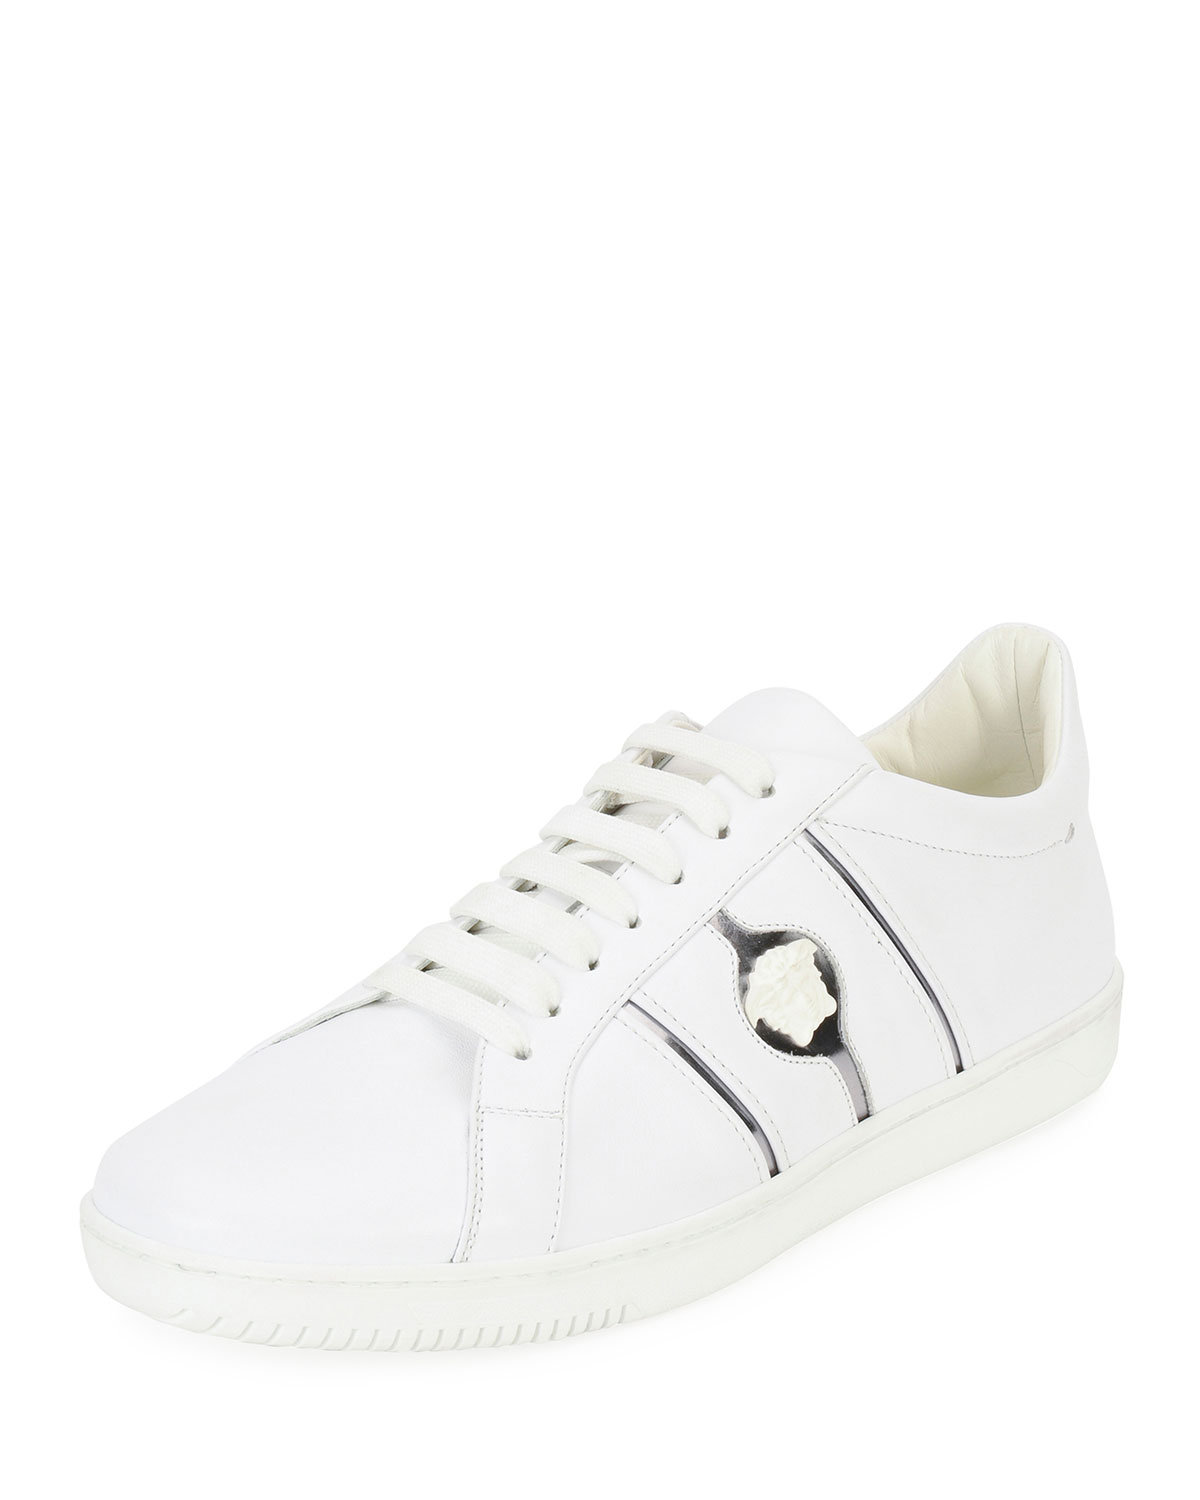 9ba9805dbfc Versace Medusa Leather Low-Top Sneaker, White | Neiman Marcus